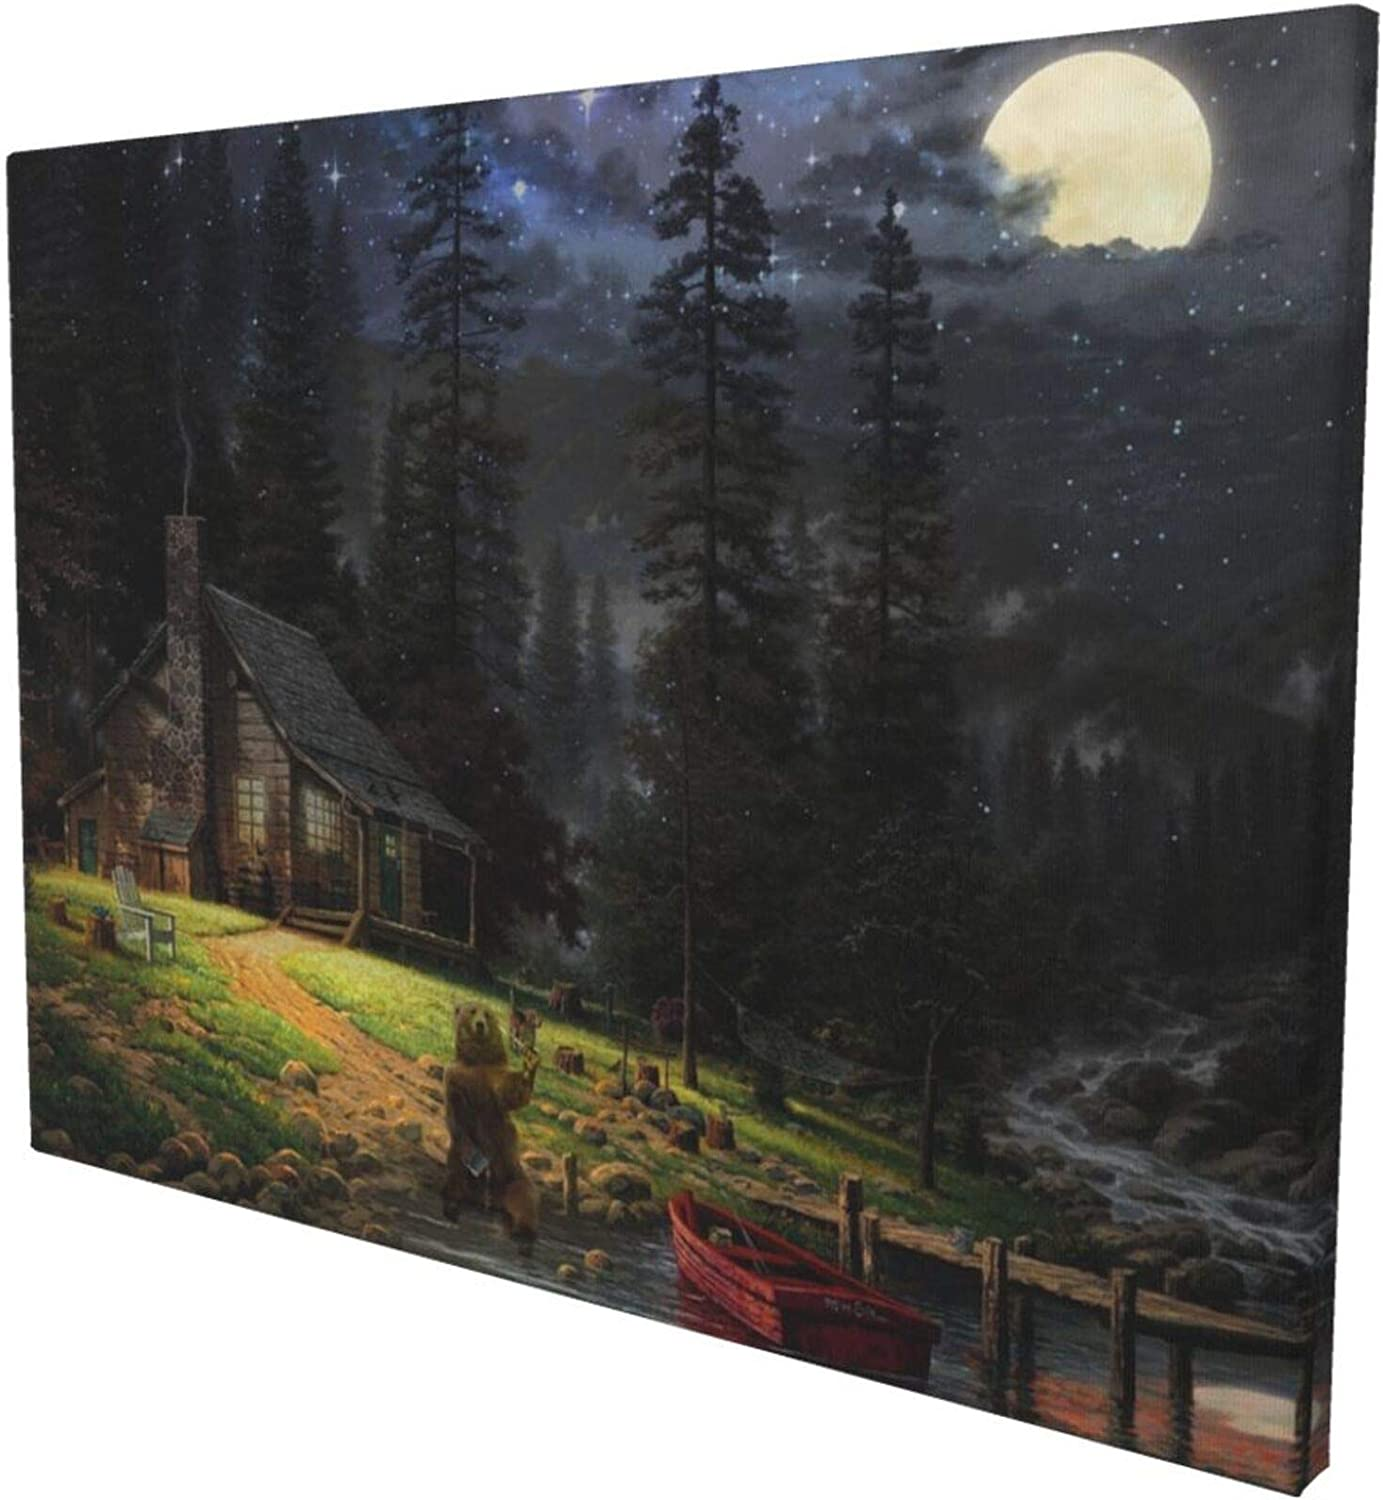 Ezyes Bear Canvas Wall Art,Creative Cute Animal Painting :The Solitary Bear In The Forest,Bears Brushing Their Teeth At Night Wall Art Decor Grizzly Bear For Bedroom Living Room Forest Canvas Artwork Cartoon Creative Oil Painting For Children'S Bedroom Wall Decoration Framed